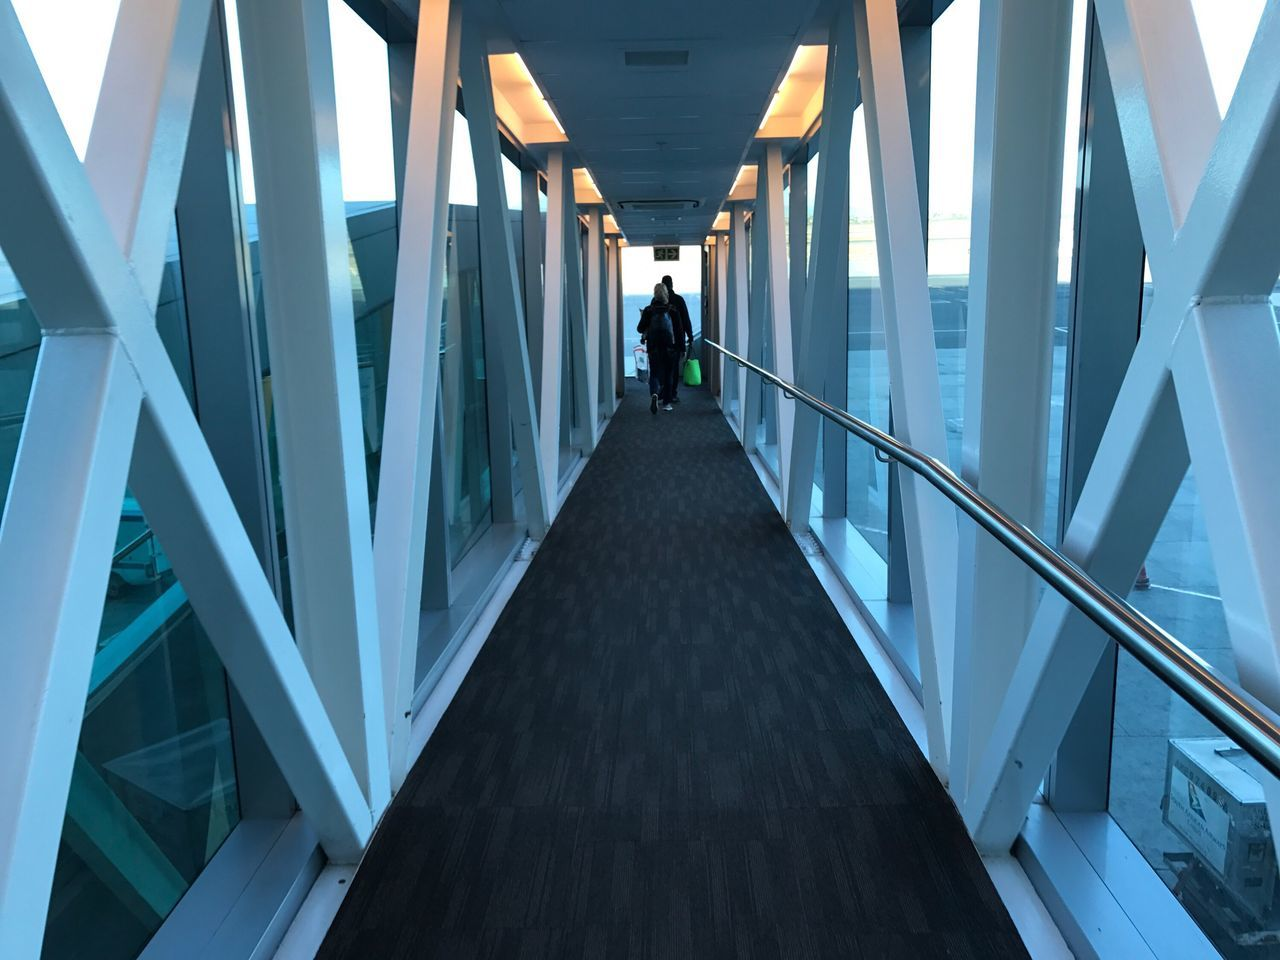 The Way Forward Built Structure Rear View Men One Person Full Length Modern People Adults Only Outdoors Day One Man Only Architecture Only Men Adult Passenger Boarding Bridge